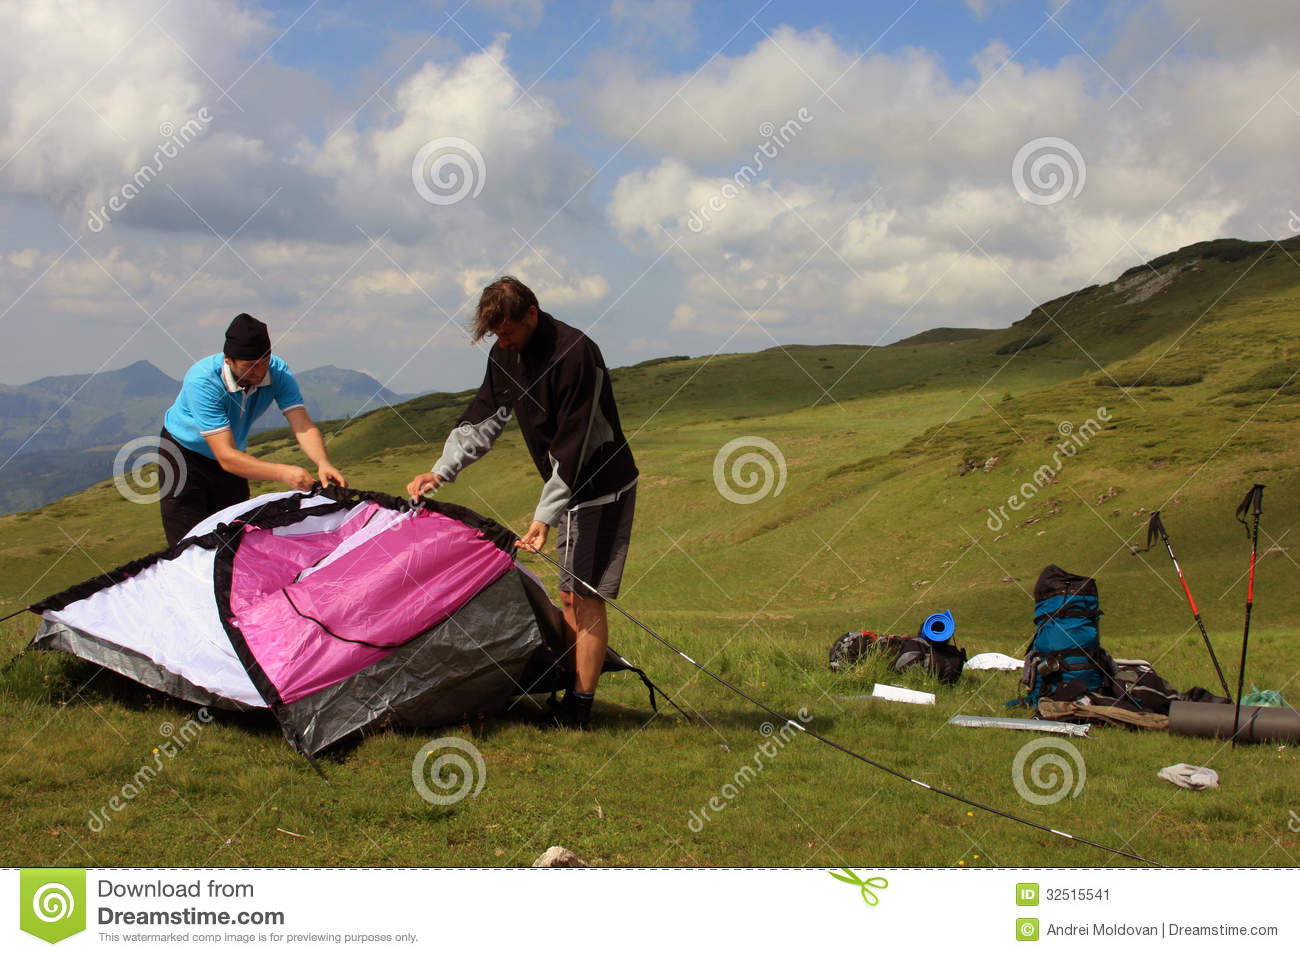 the tent building stock image image of exterior city 1397747